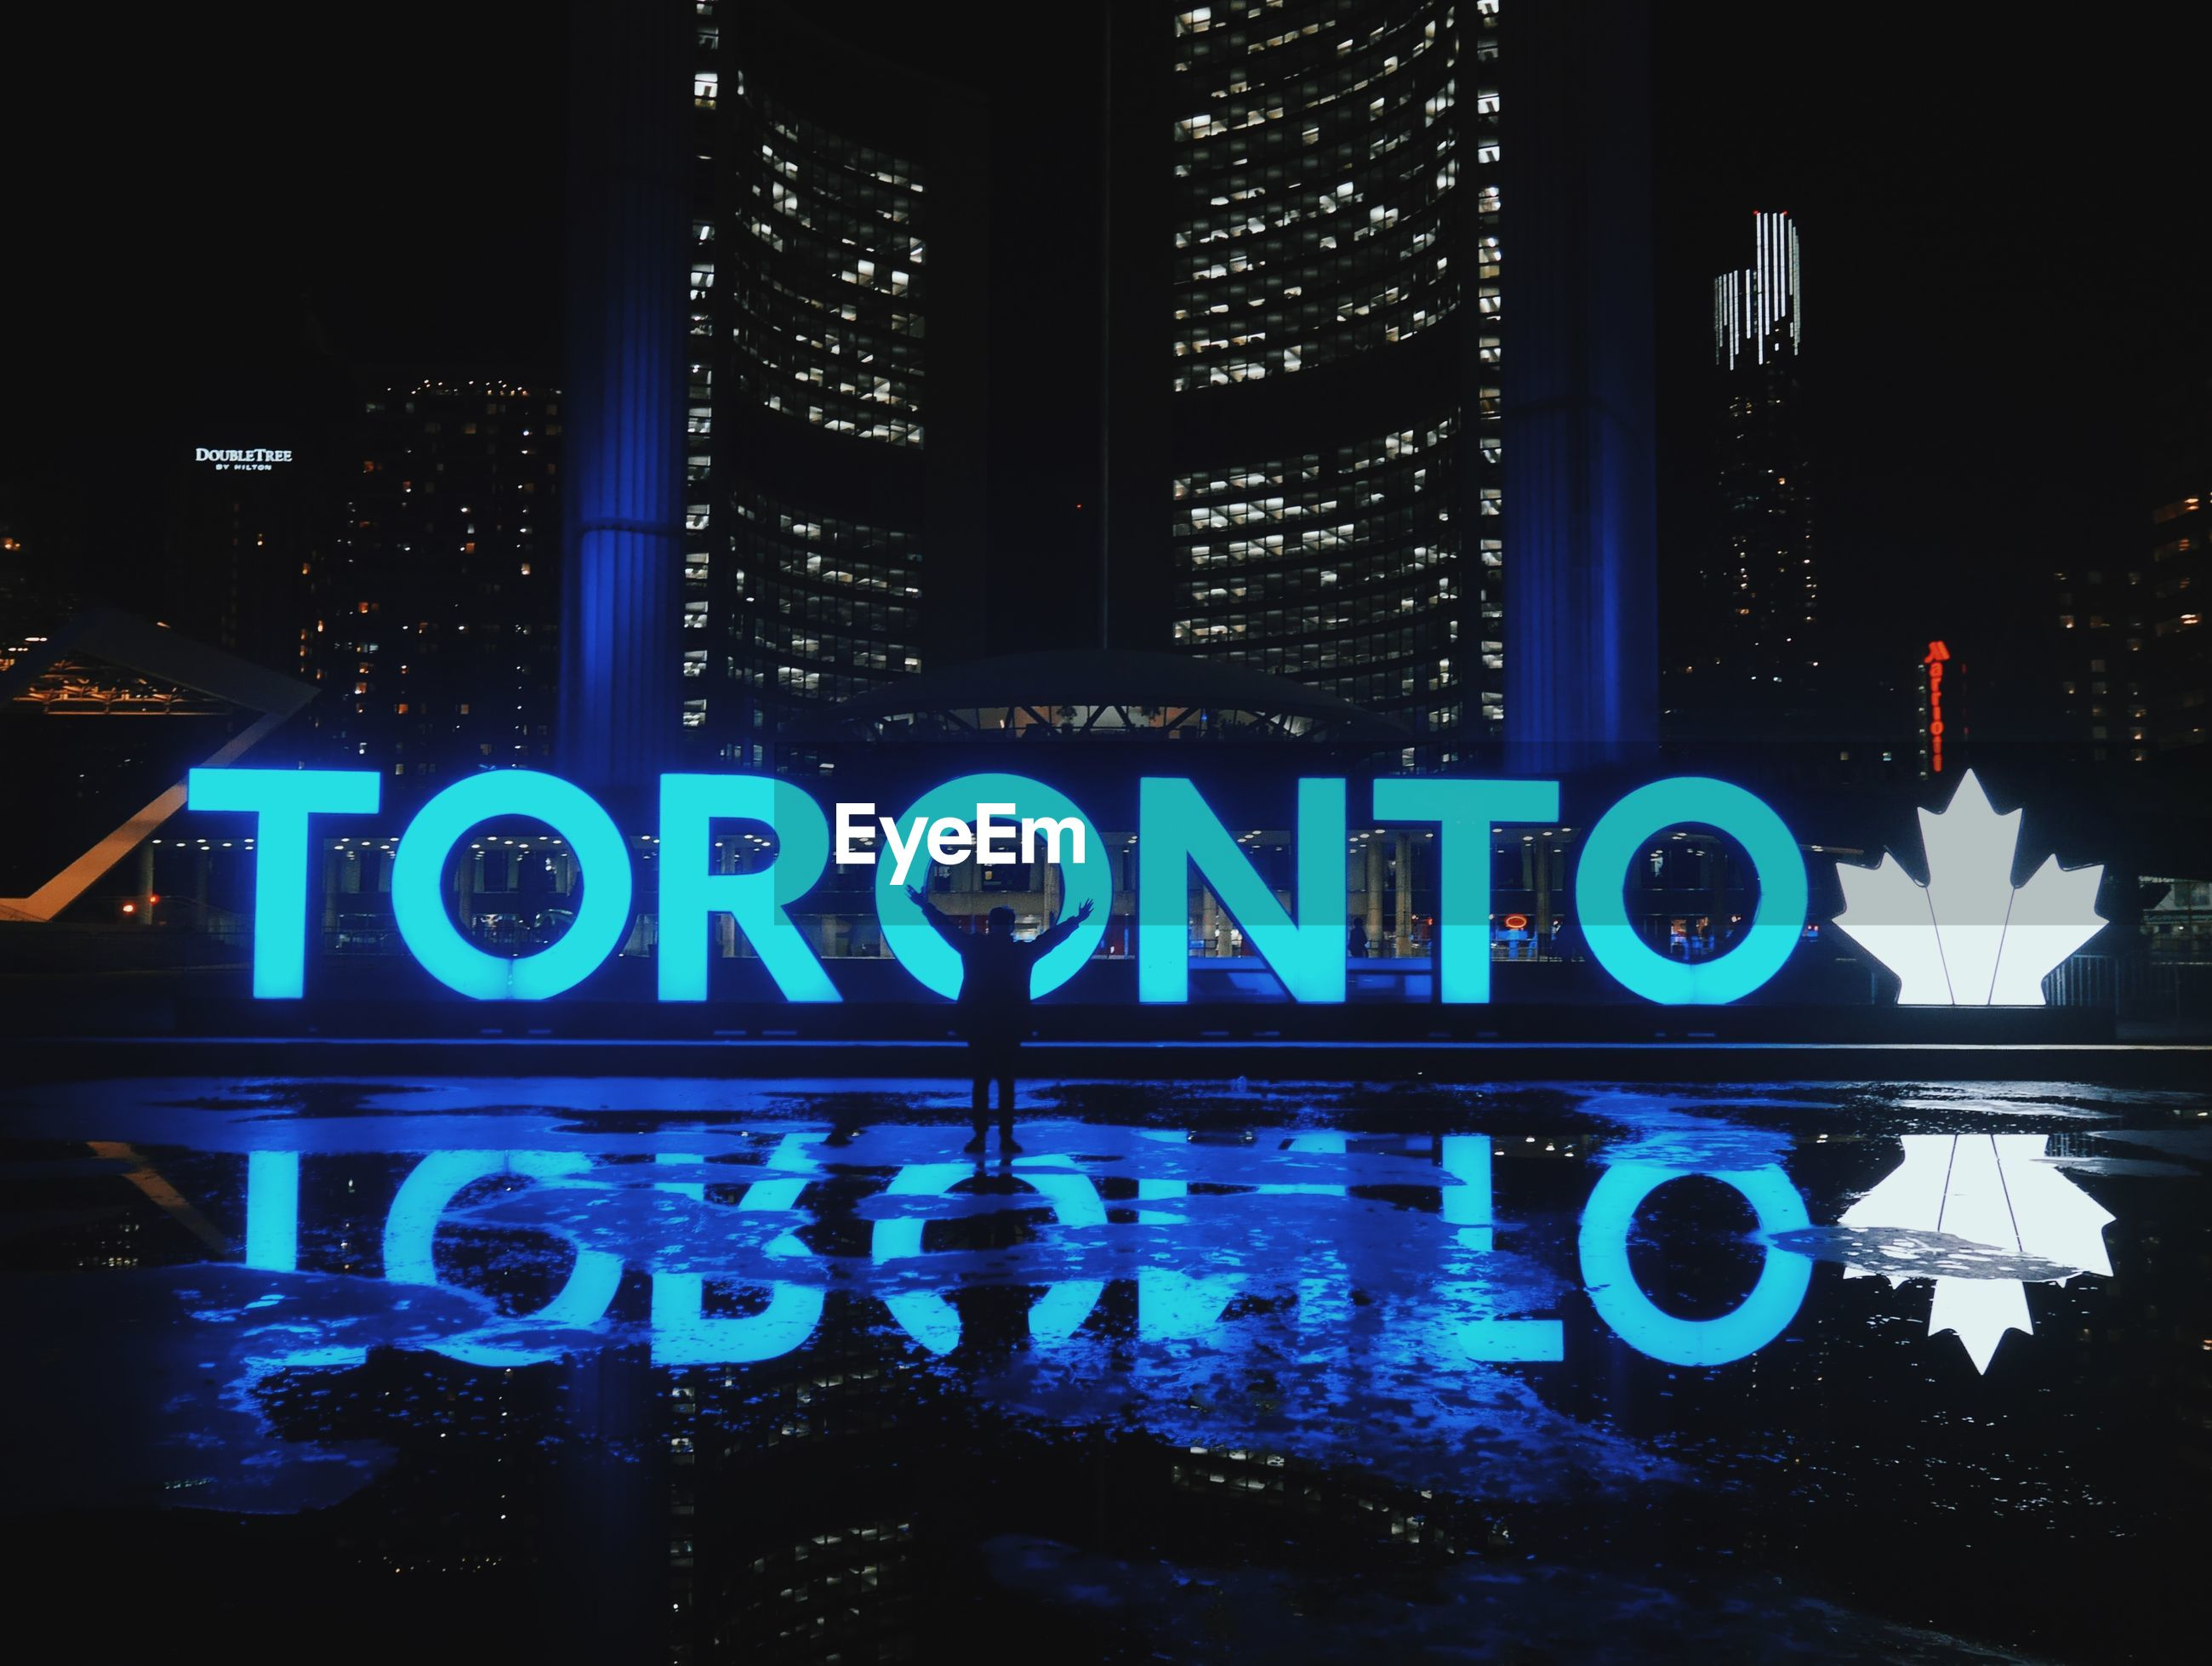 Man in front of toronto sign